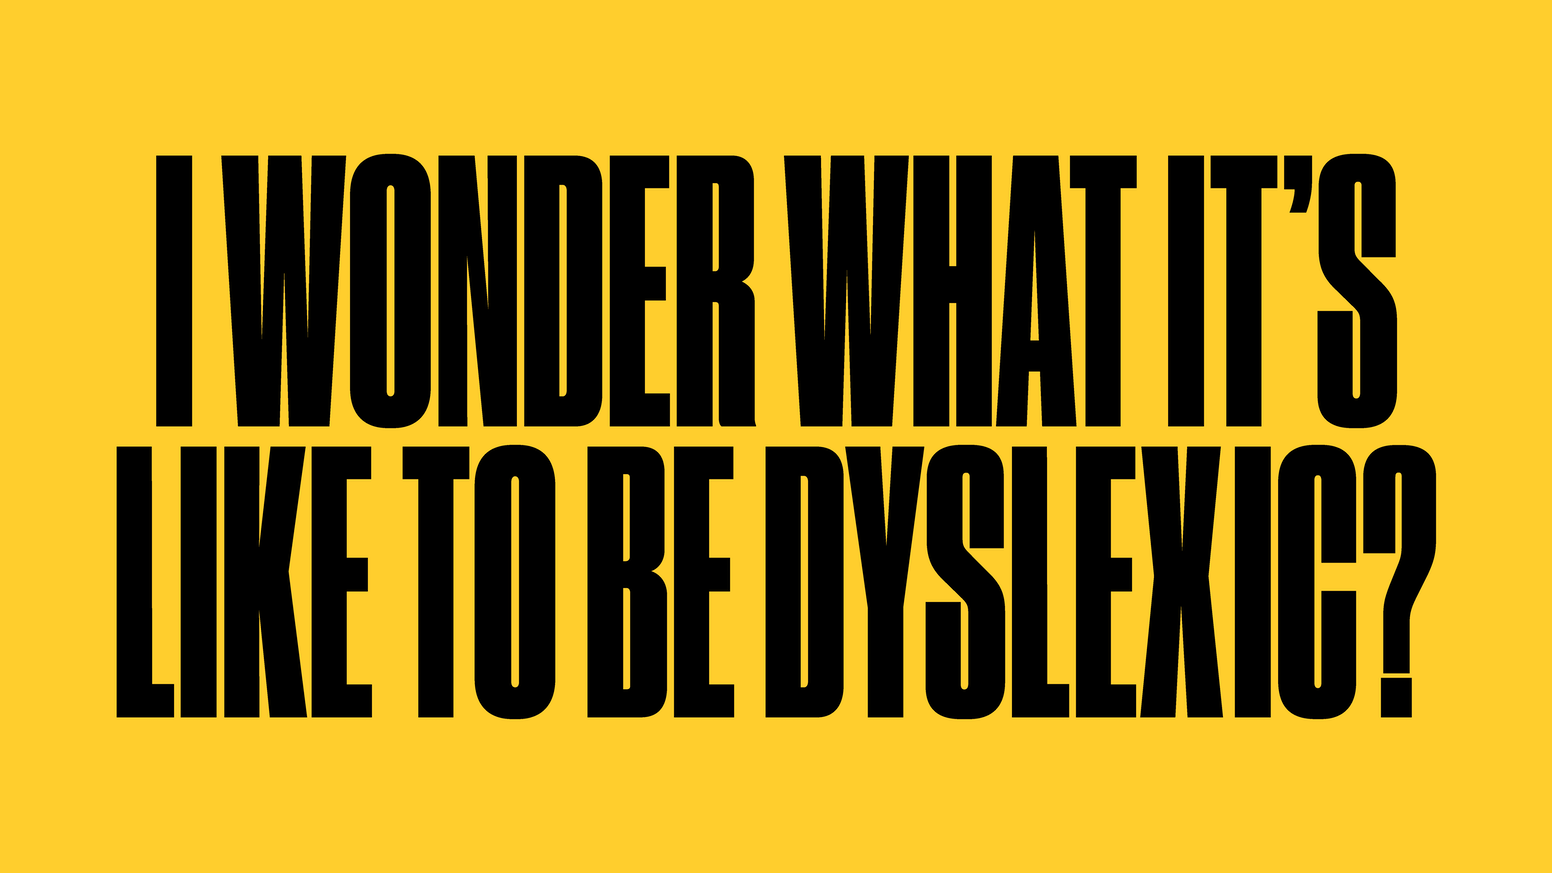 I Wonder What it's Like to be Dyslexic? III